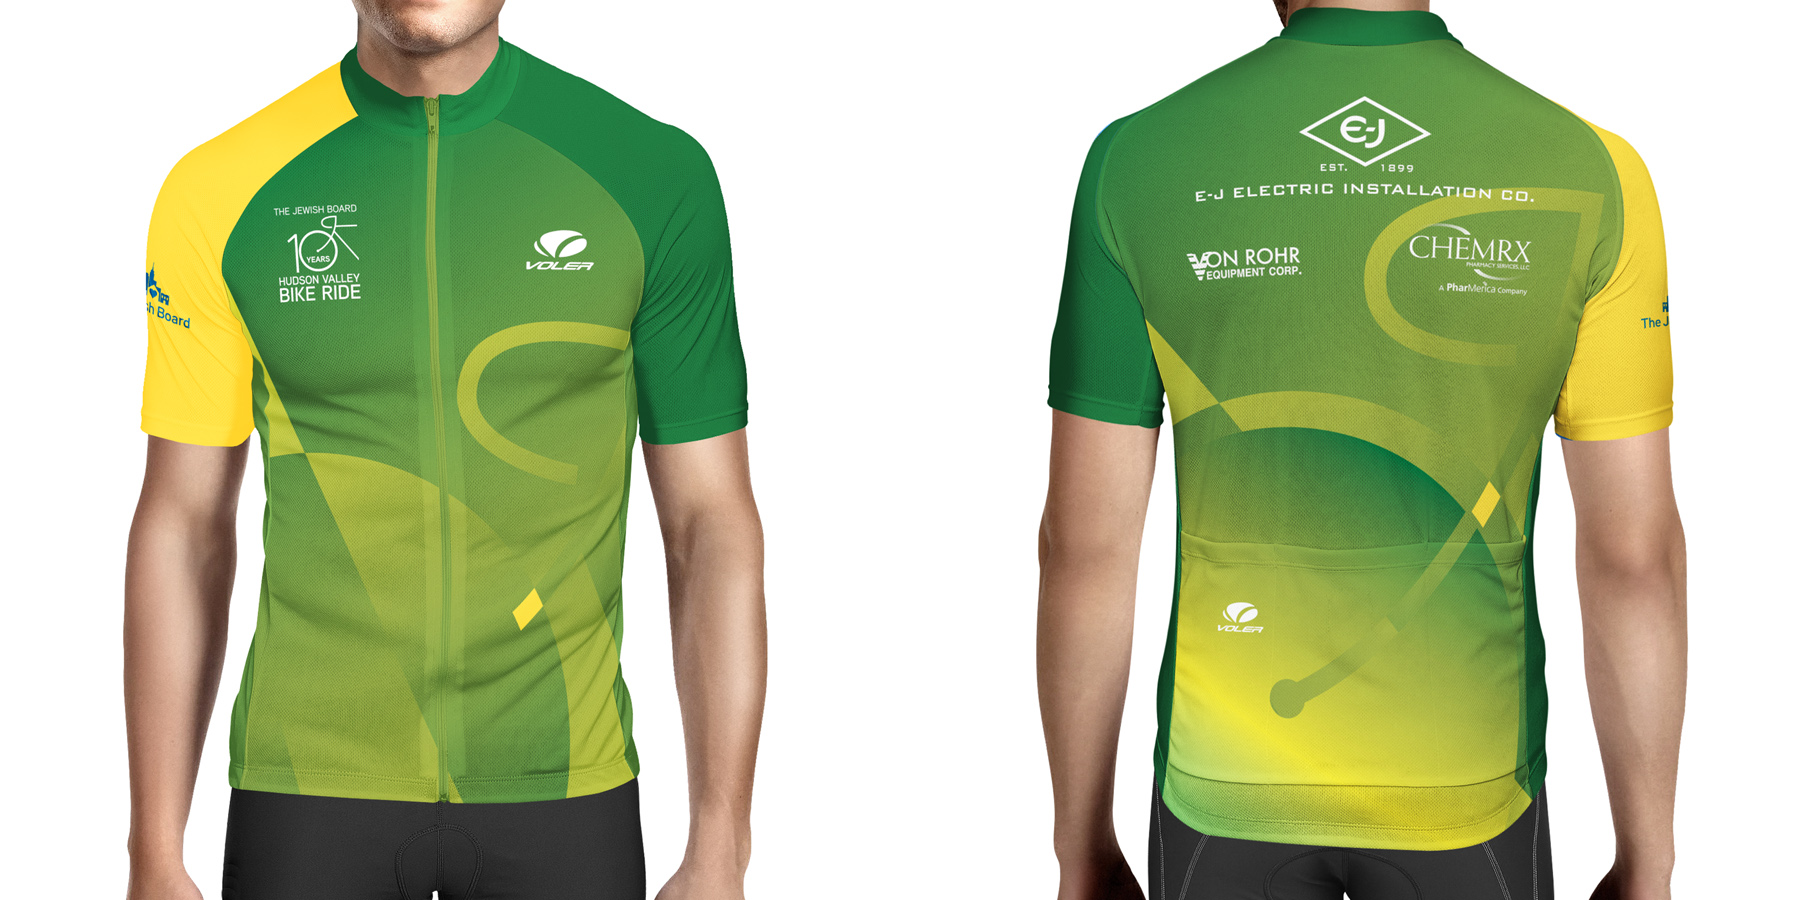 HBBR bike jersey version 2